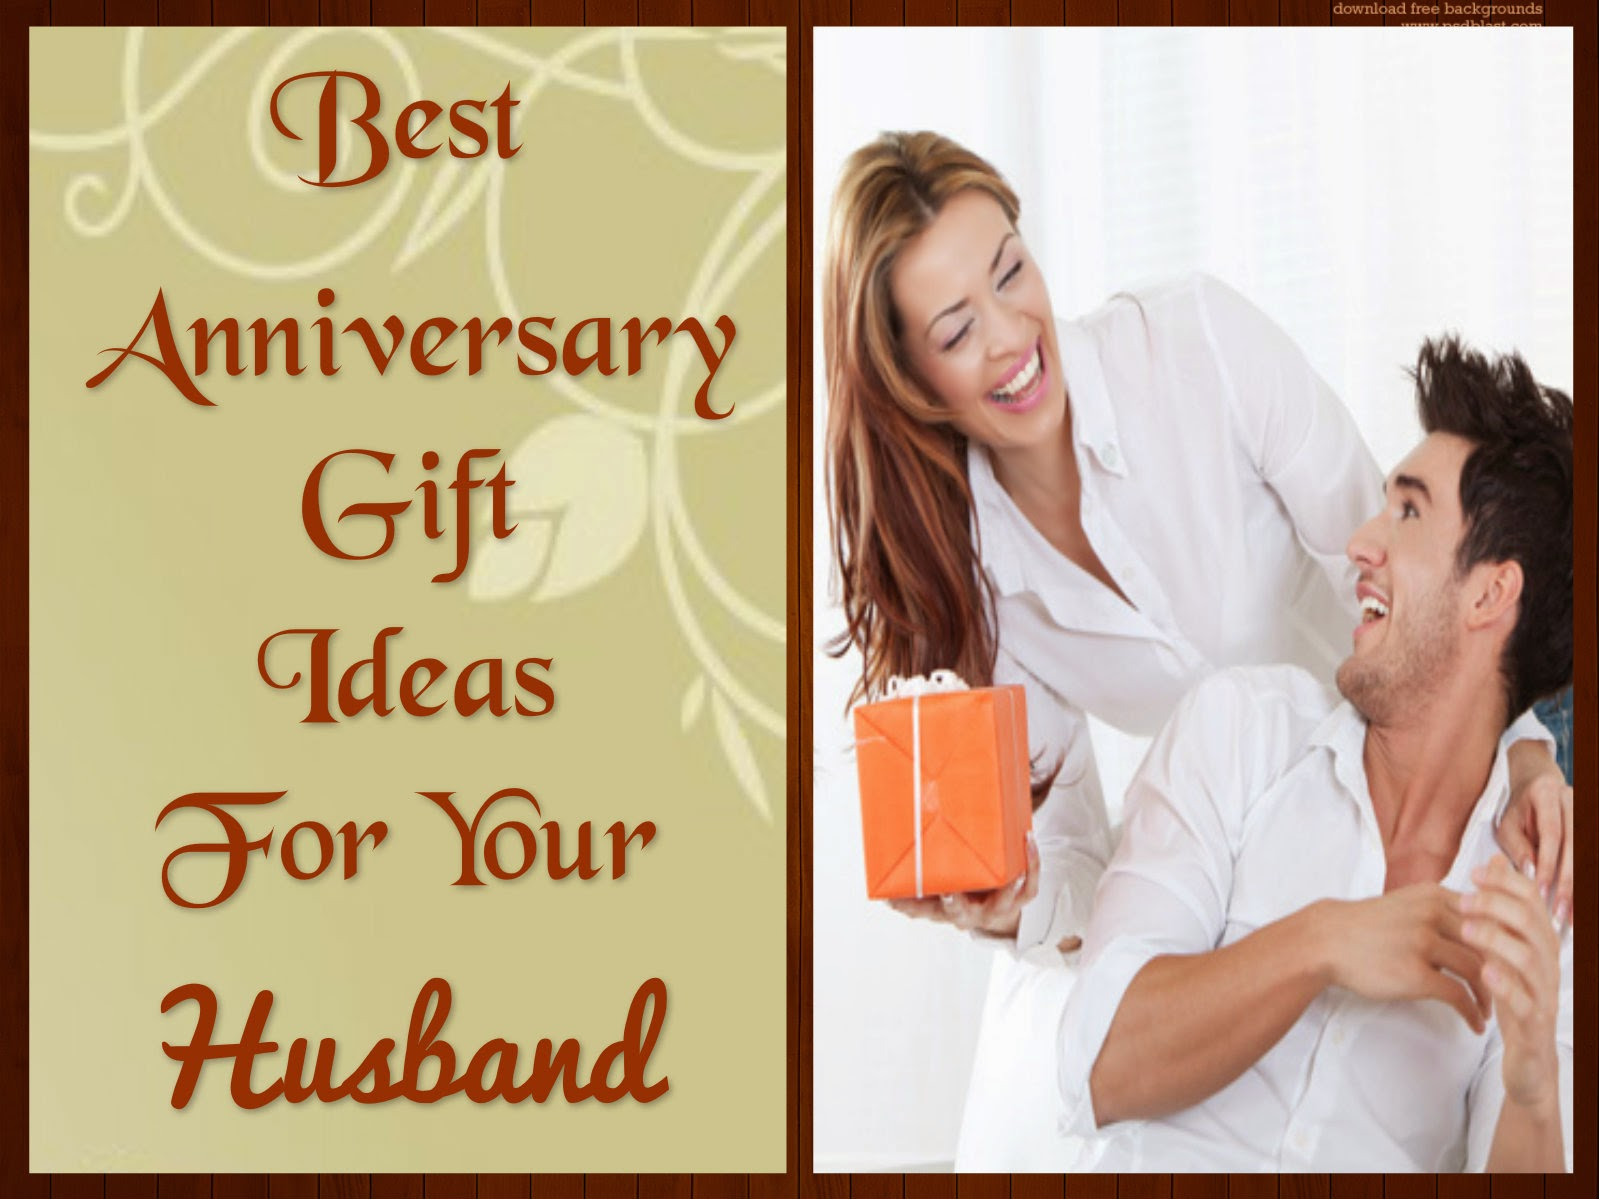 Ideas For Wedding Anniversary Gifts For Husband: Wedding Anniversary Gifts: Best Anniversary Gift Ideas For